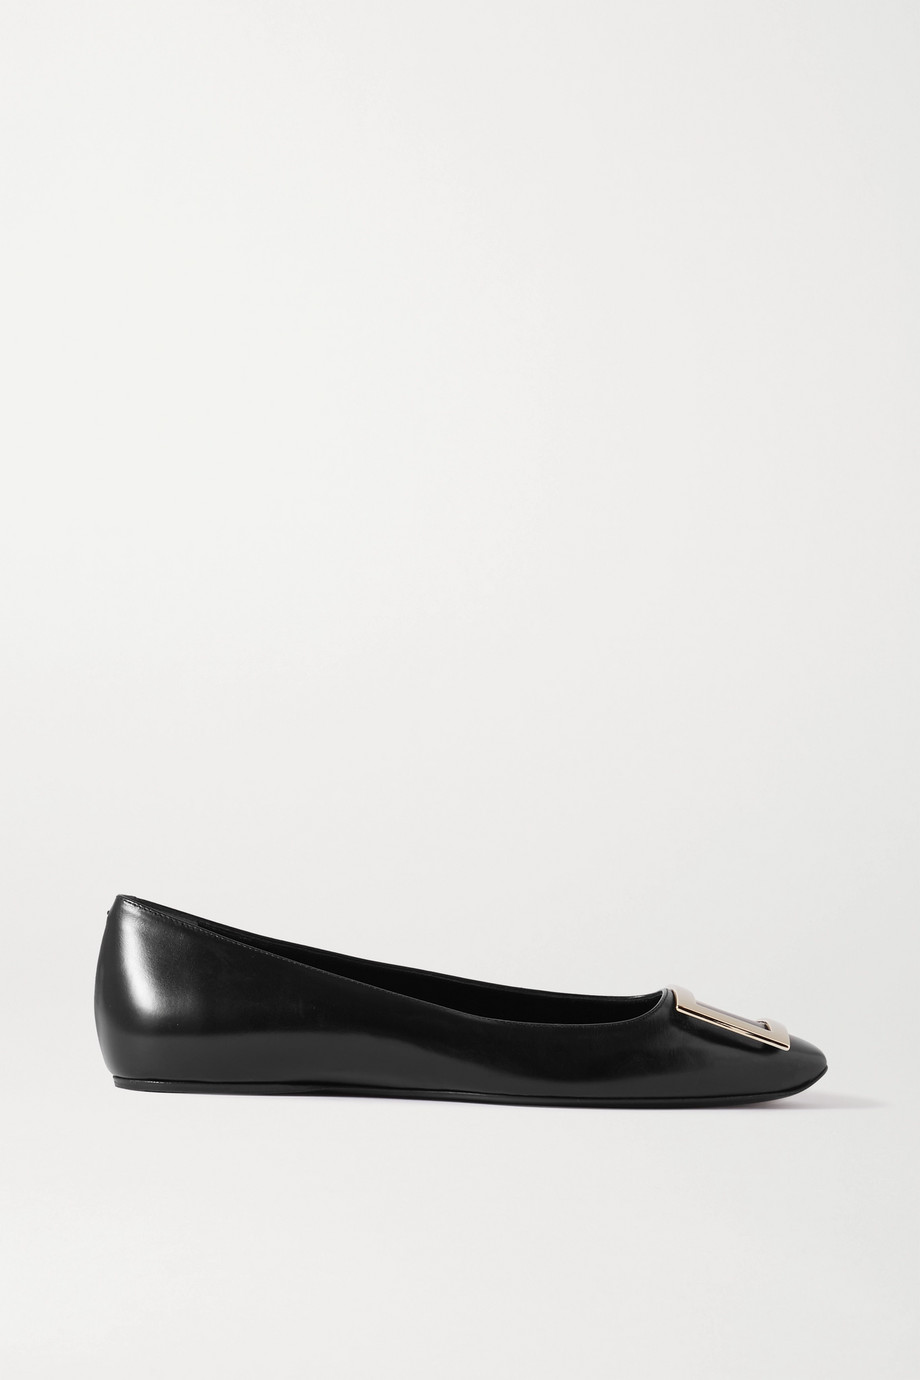 ROGER VIVIER Trompette Bellerine glossed-leather ballet flats